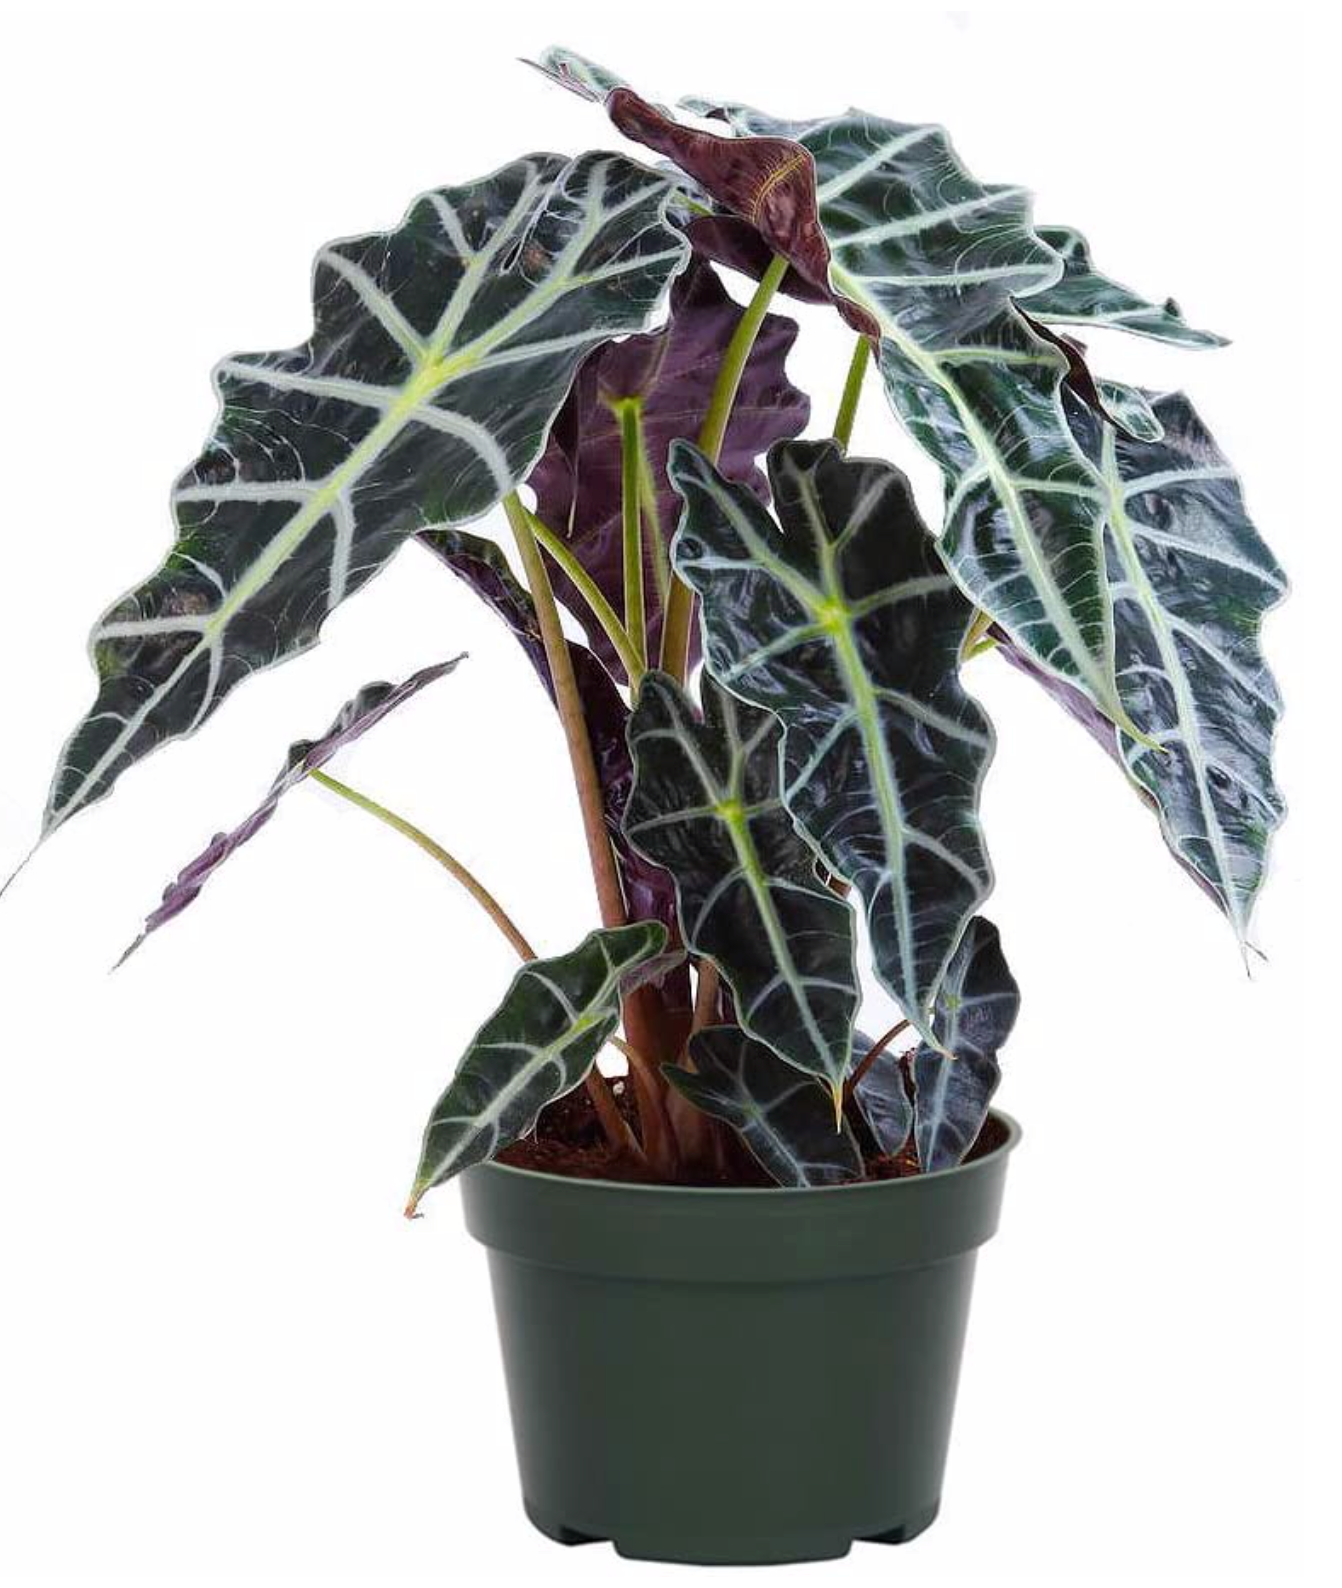 Alocasia African Mask 6in